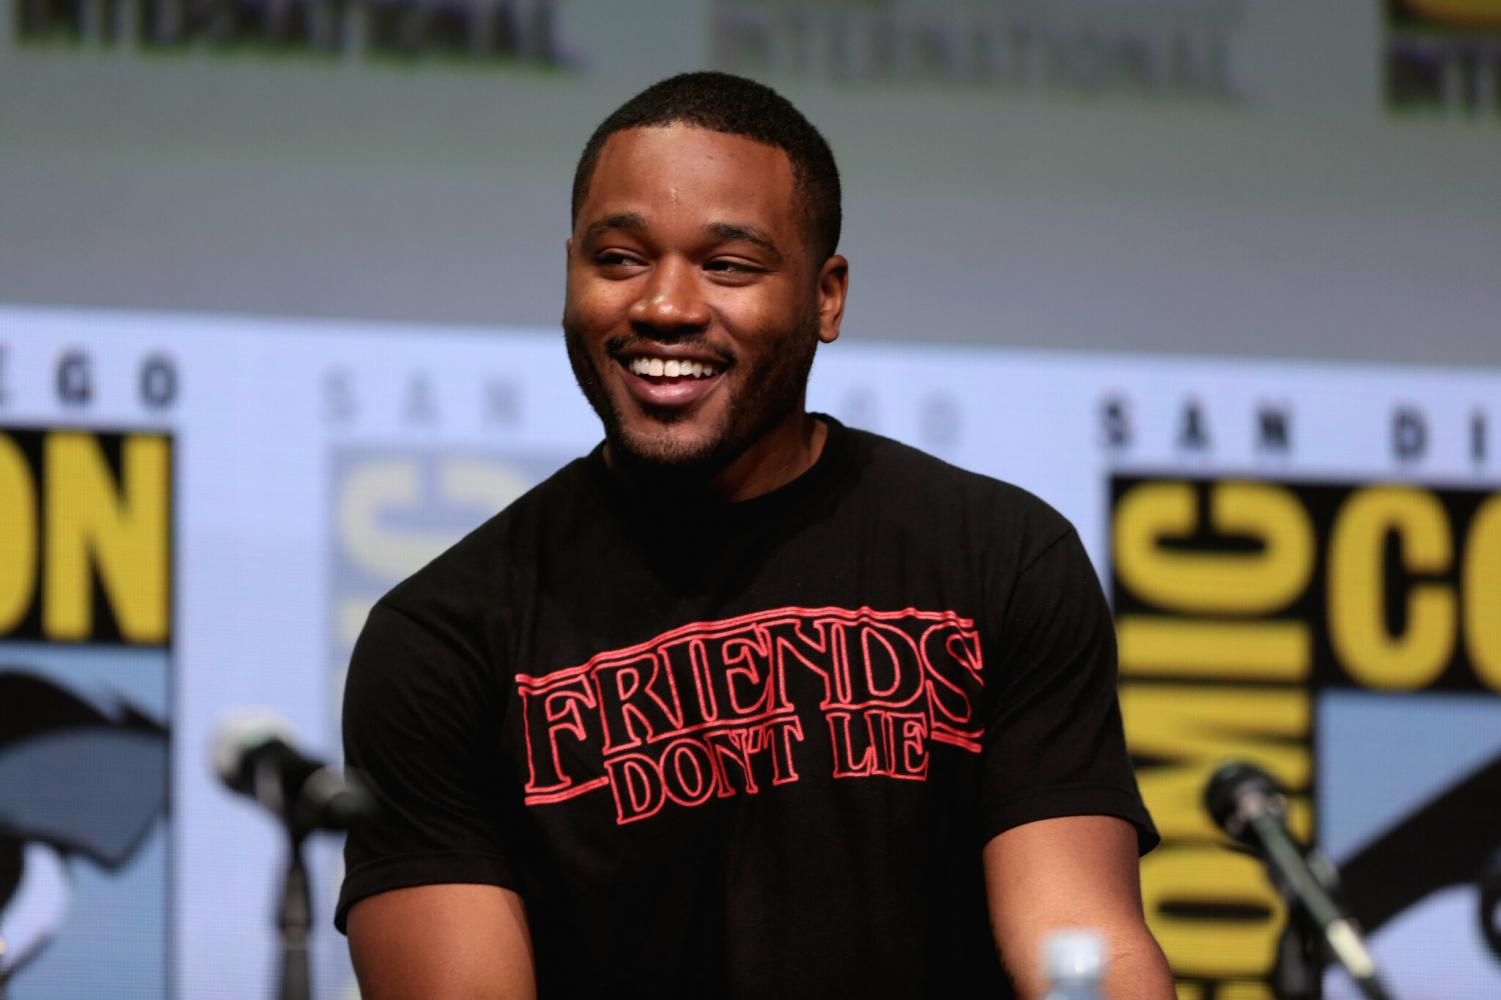 Ryan Coogler speaks at the 2017 San Diego Comic Con for film 'Black Panther.' Coogler, an alumnus of Sac State, spoke to The State Hornet about his plans to attend film school at the University of Southern California in 2007.